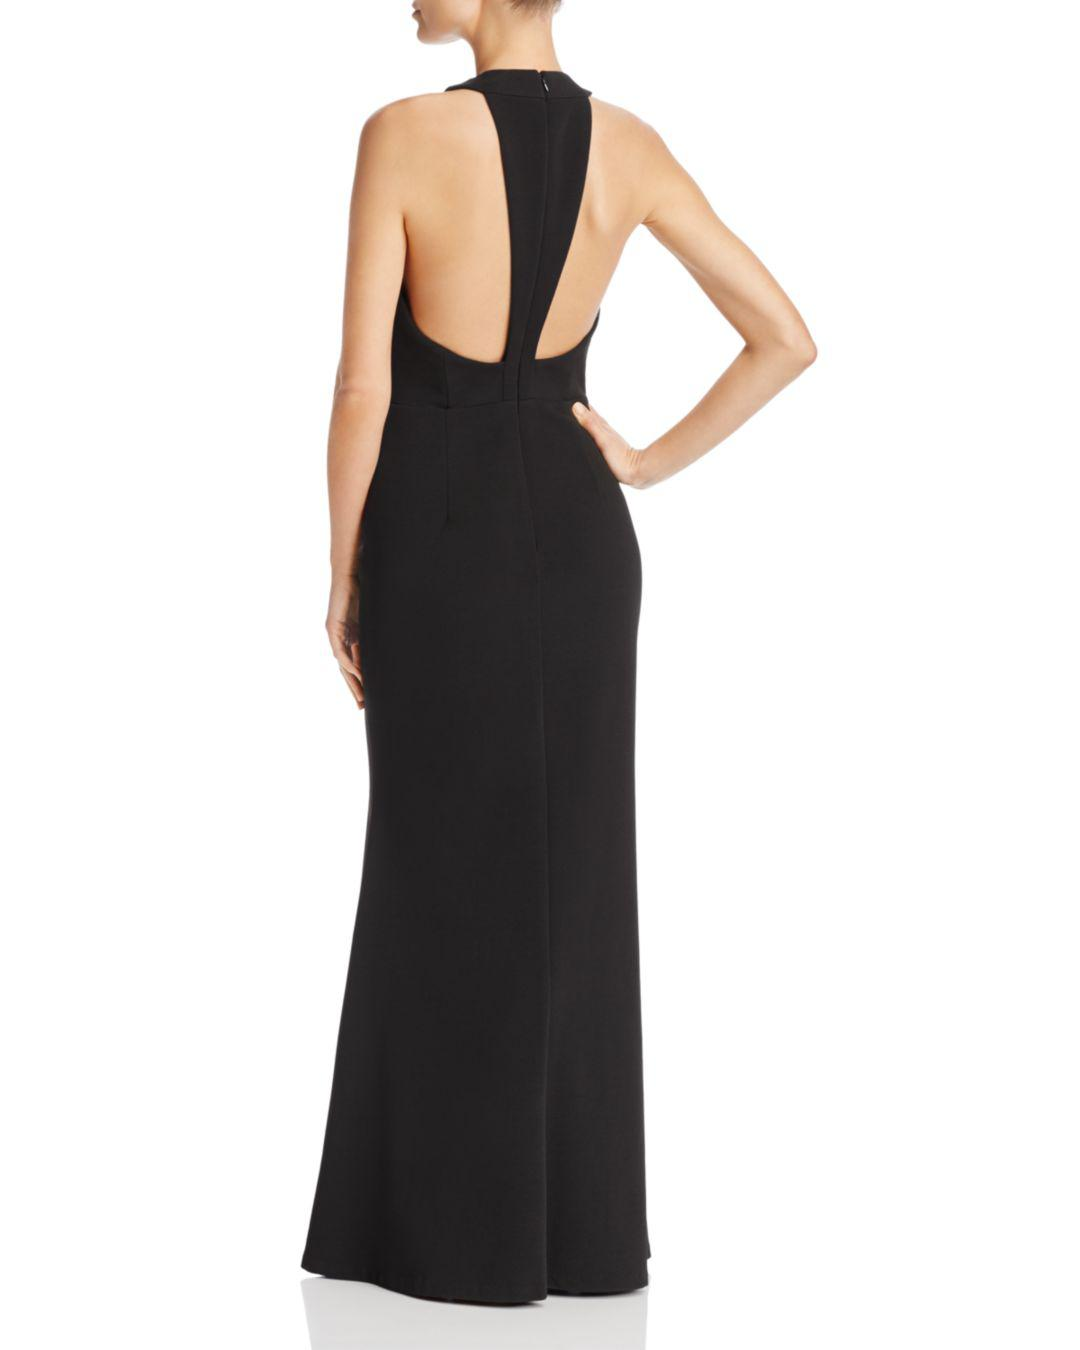 Js Collections Cross-front Gown in Black - Lyst